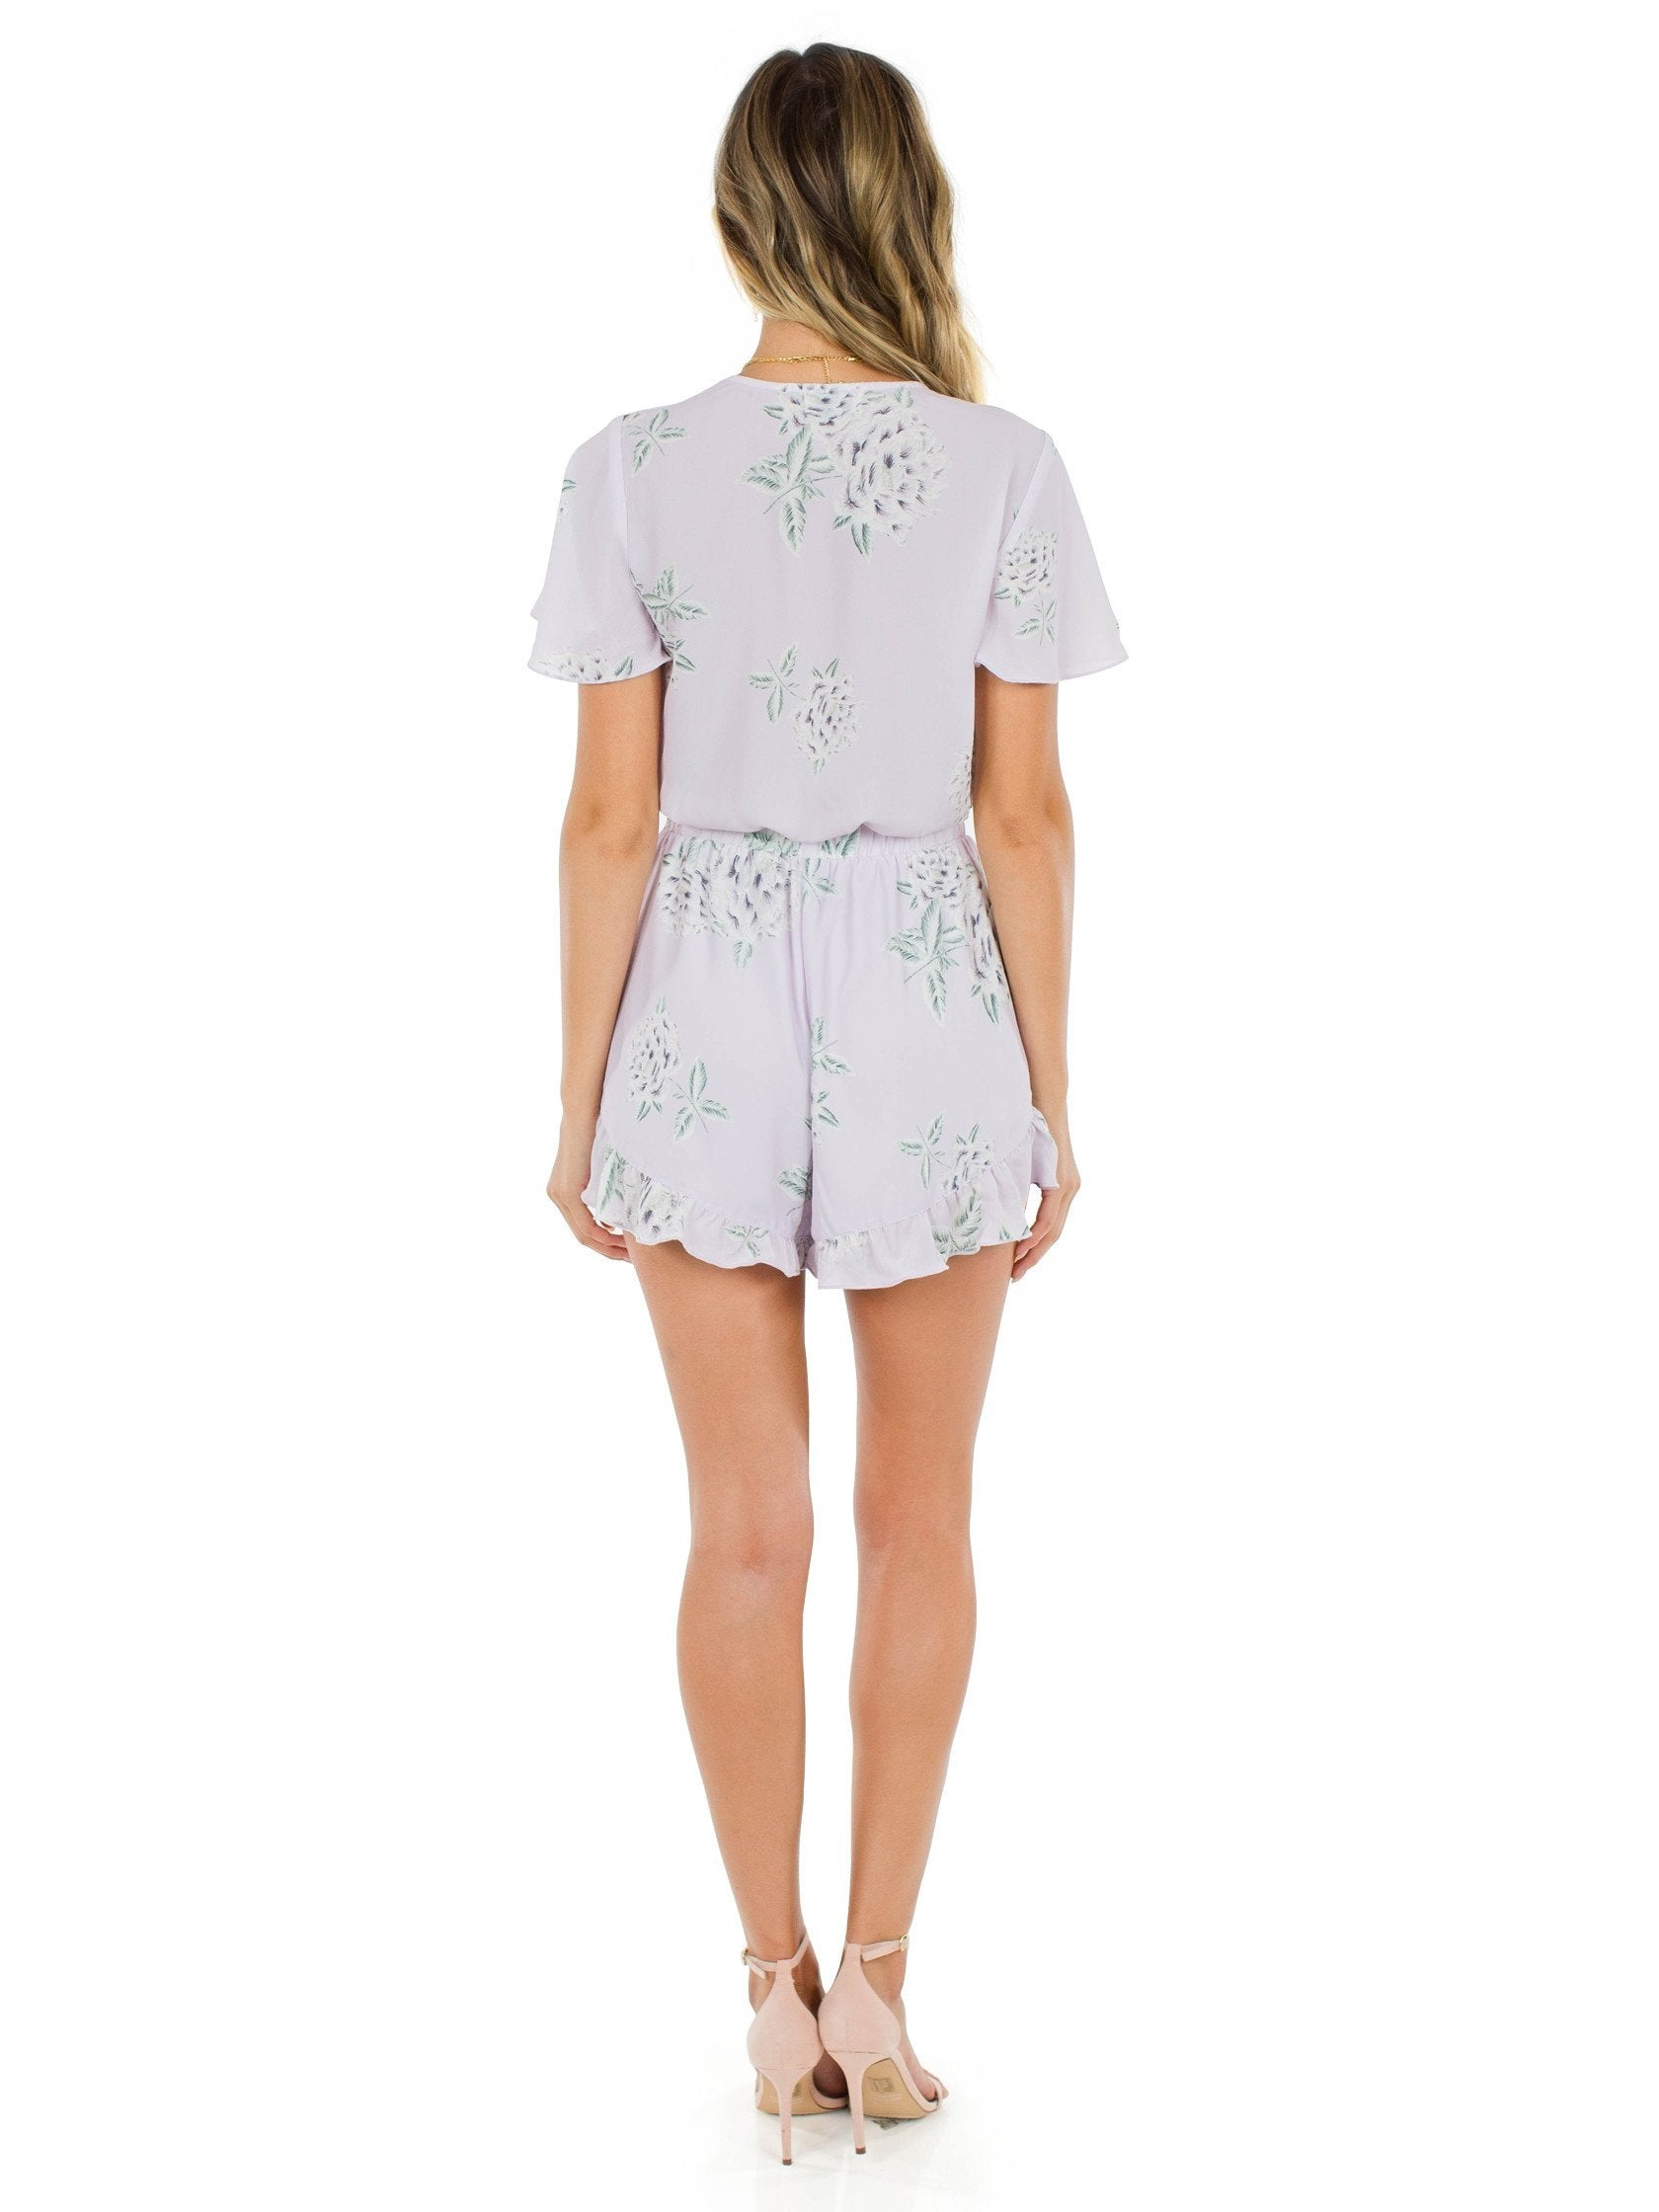 Girl wearing a romper rental from Show Me Your Mumu called Riviera Romper